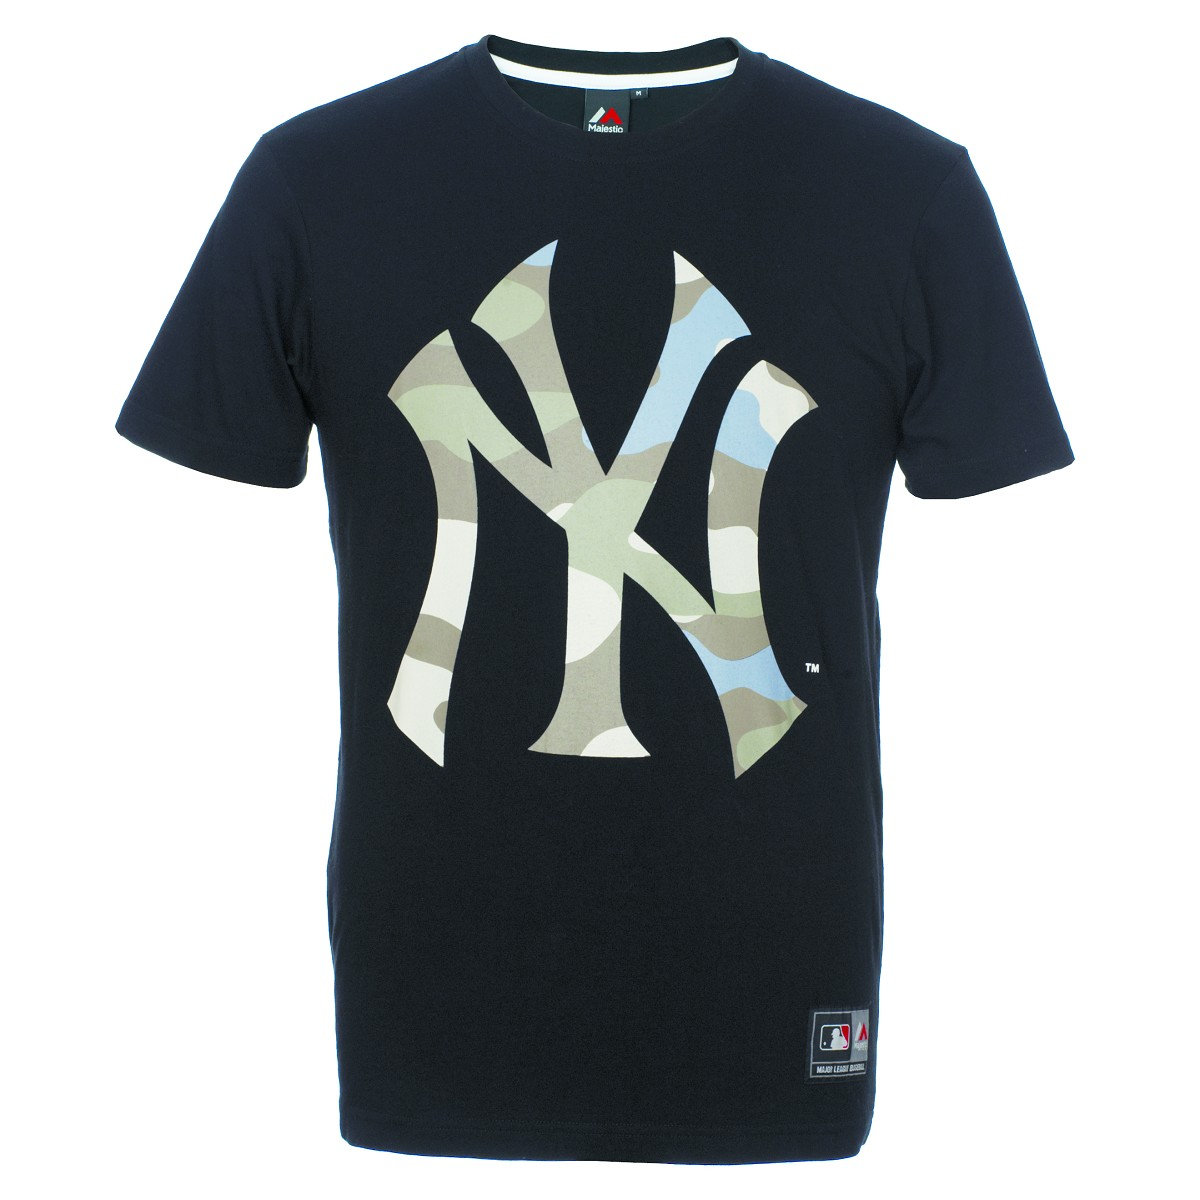 Home · MAJESTIC ATHLETIC · BASEBALL MLB  Current MAGLIE · TSHIRT MAJESTIC  CLASSIC LOGO NEW YORK YANKEES 1f382ad1e1a2